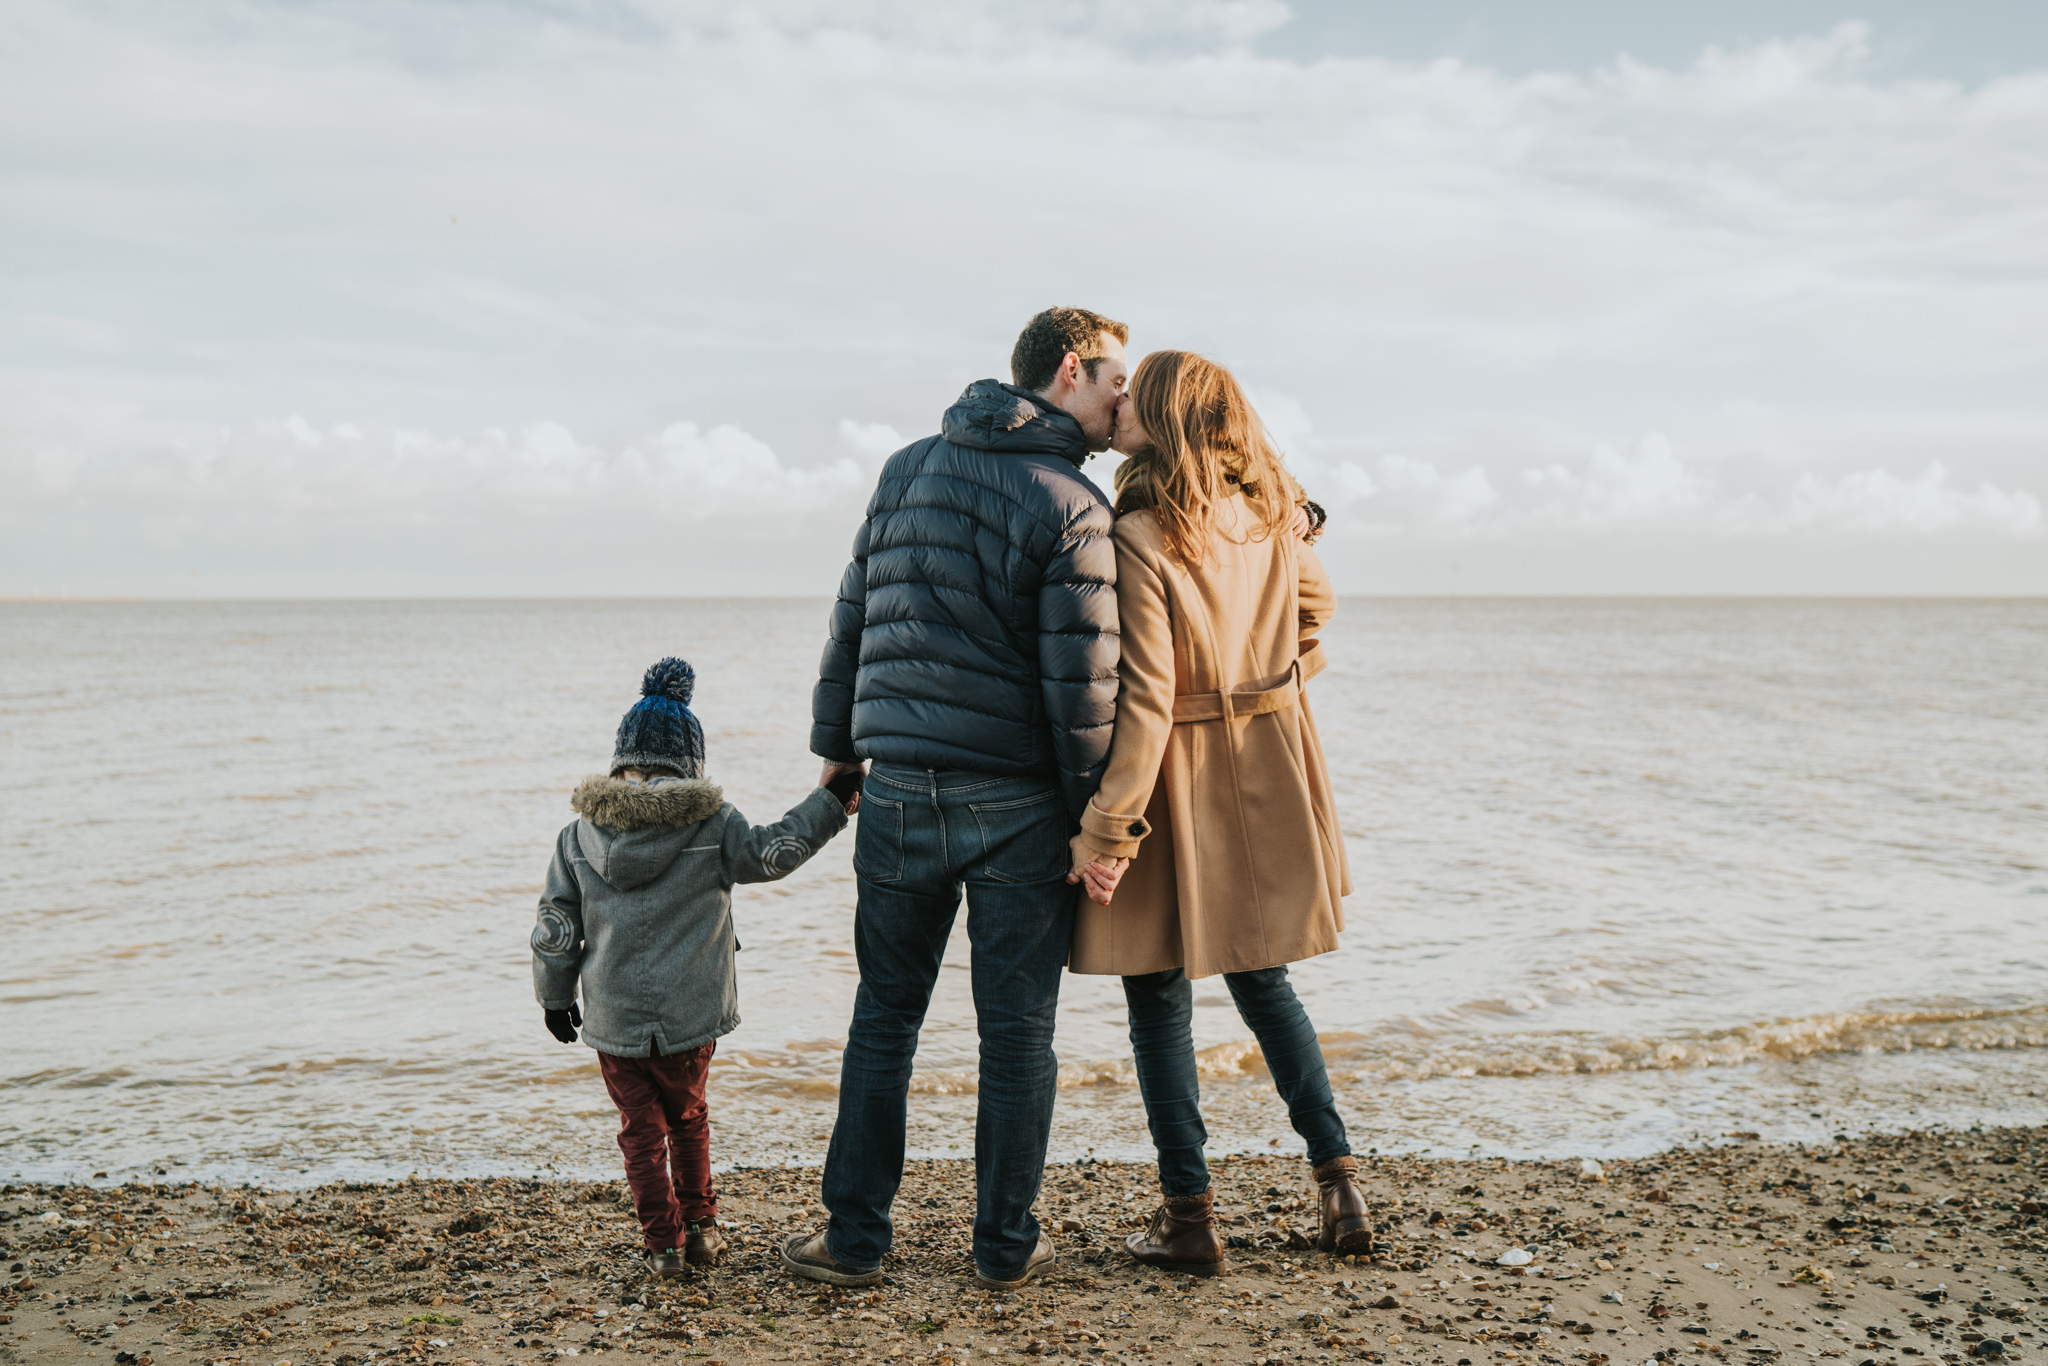 bushell-family-session-beach-cudmore-grove-lifestyle-grace-elizabeth-colchester-essex-alternative-relaxed-wedding-family-photography-devon-suffolk-norfolk-essex (15 of 34).jpg